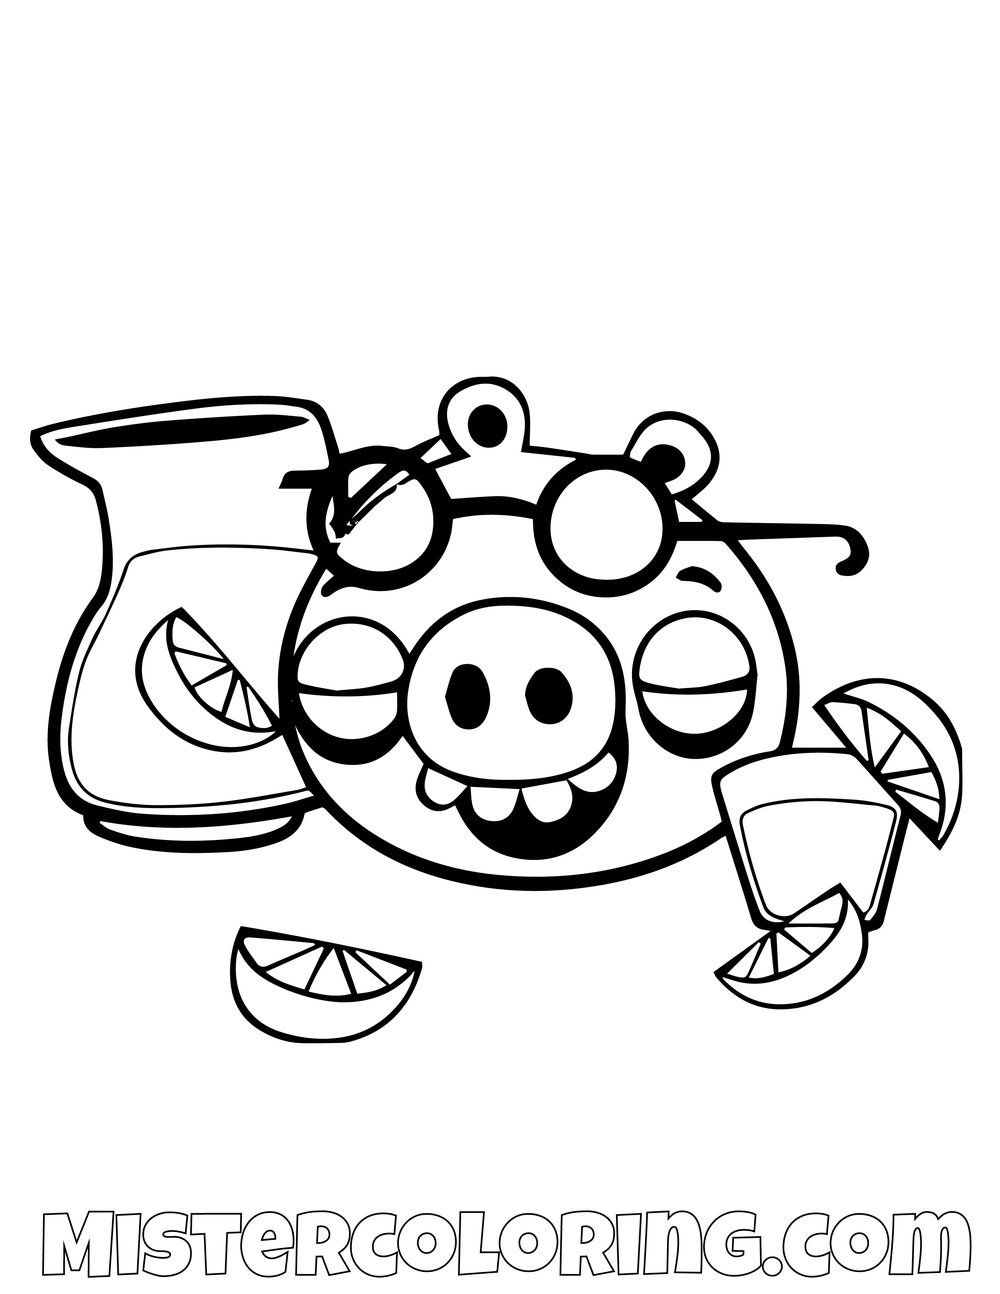 Pig Drinking Lemonade Angry Birds Coloring Pages Bird Coloring Pages Angry Birds Pigs Dinosaur Coloring Pages